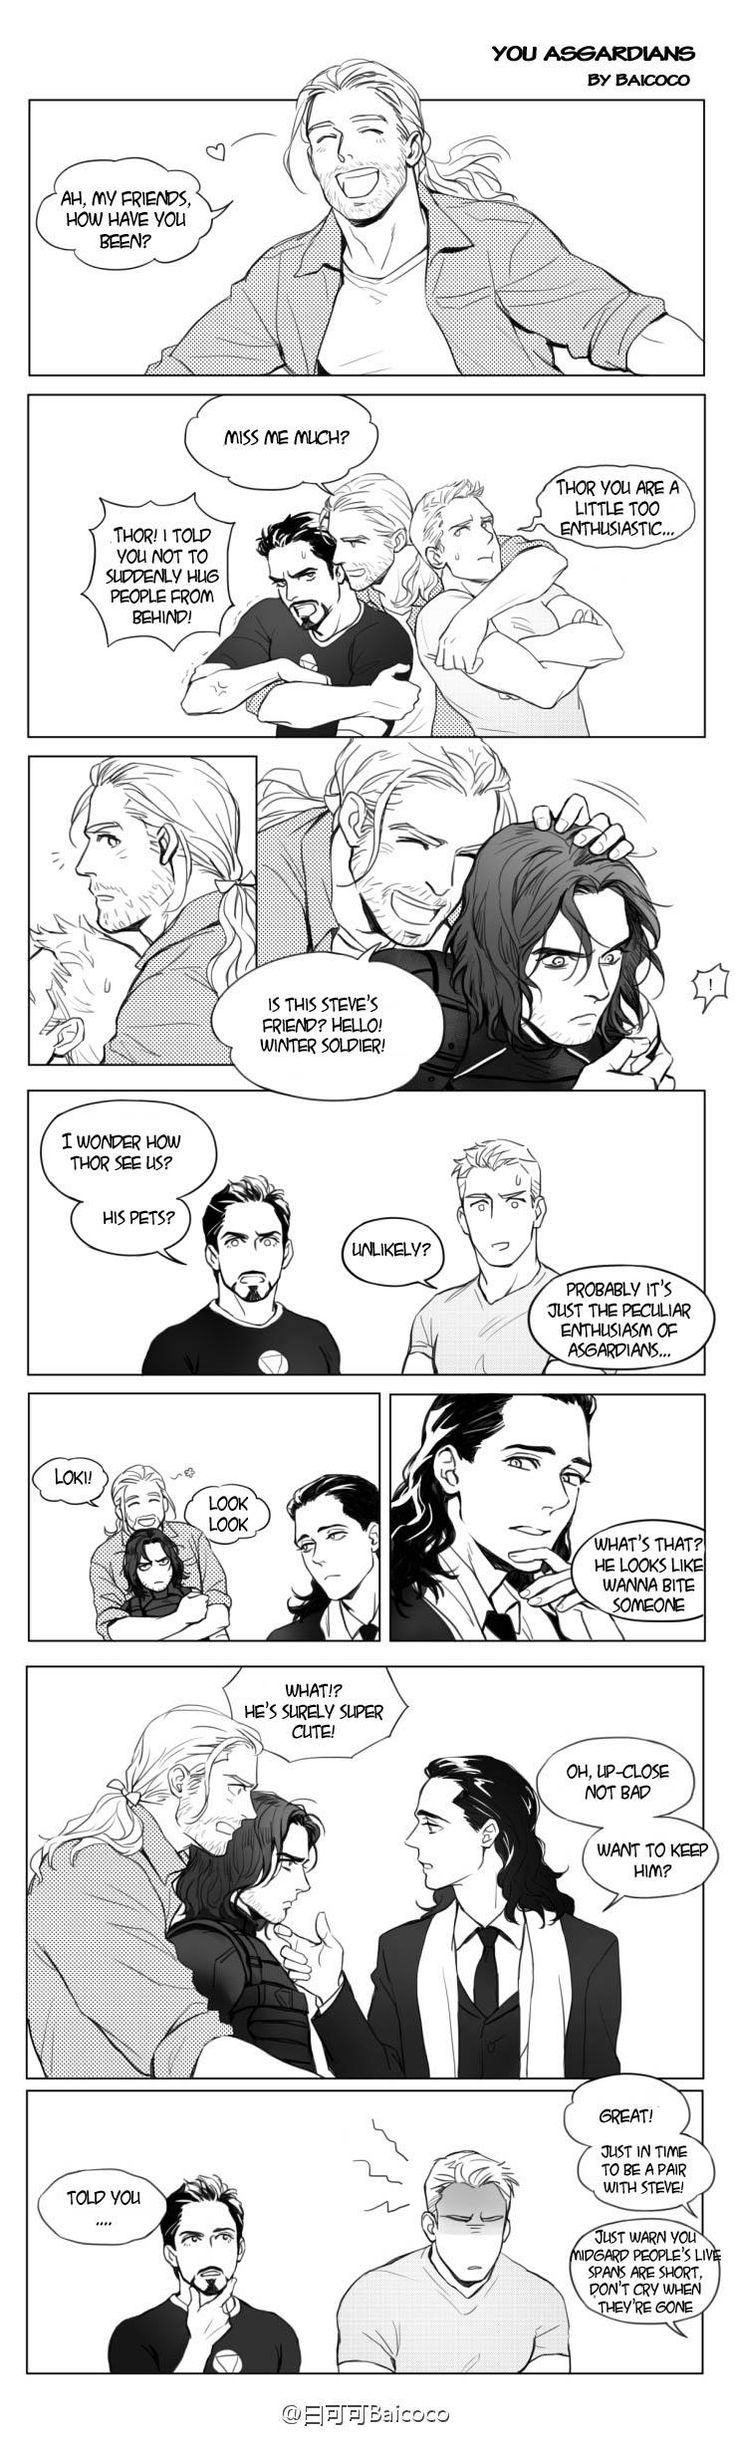 Thor ships Stucky, LOL, and sure, he has good looking for guys, Bucky it's super cute